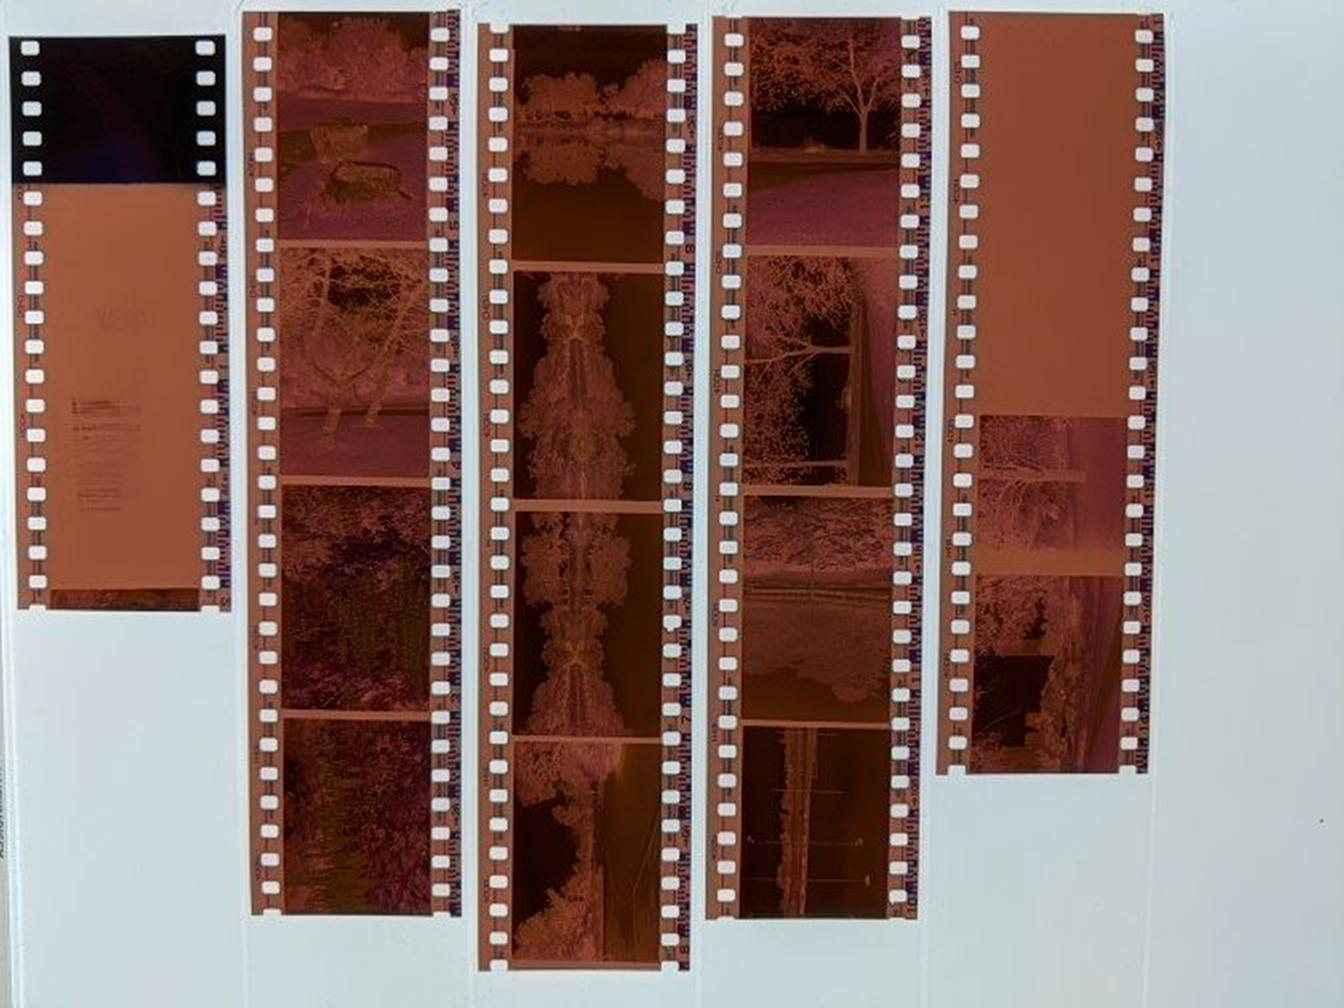 Fujifilm 400N negatives, Toni Skokovic